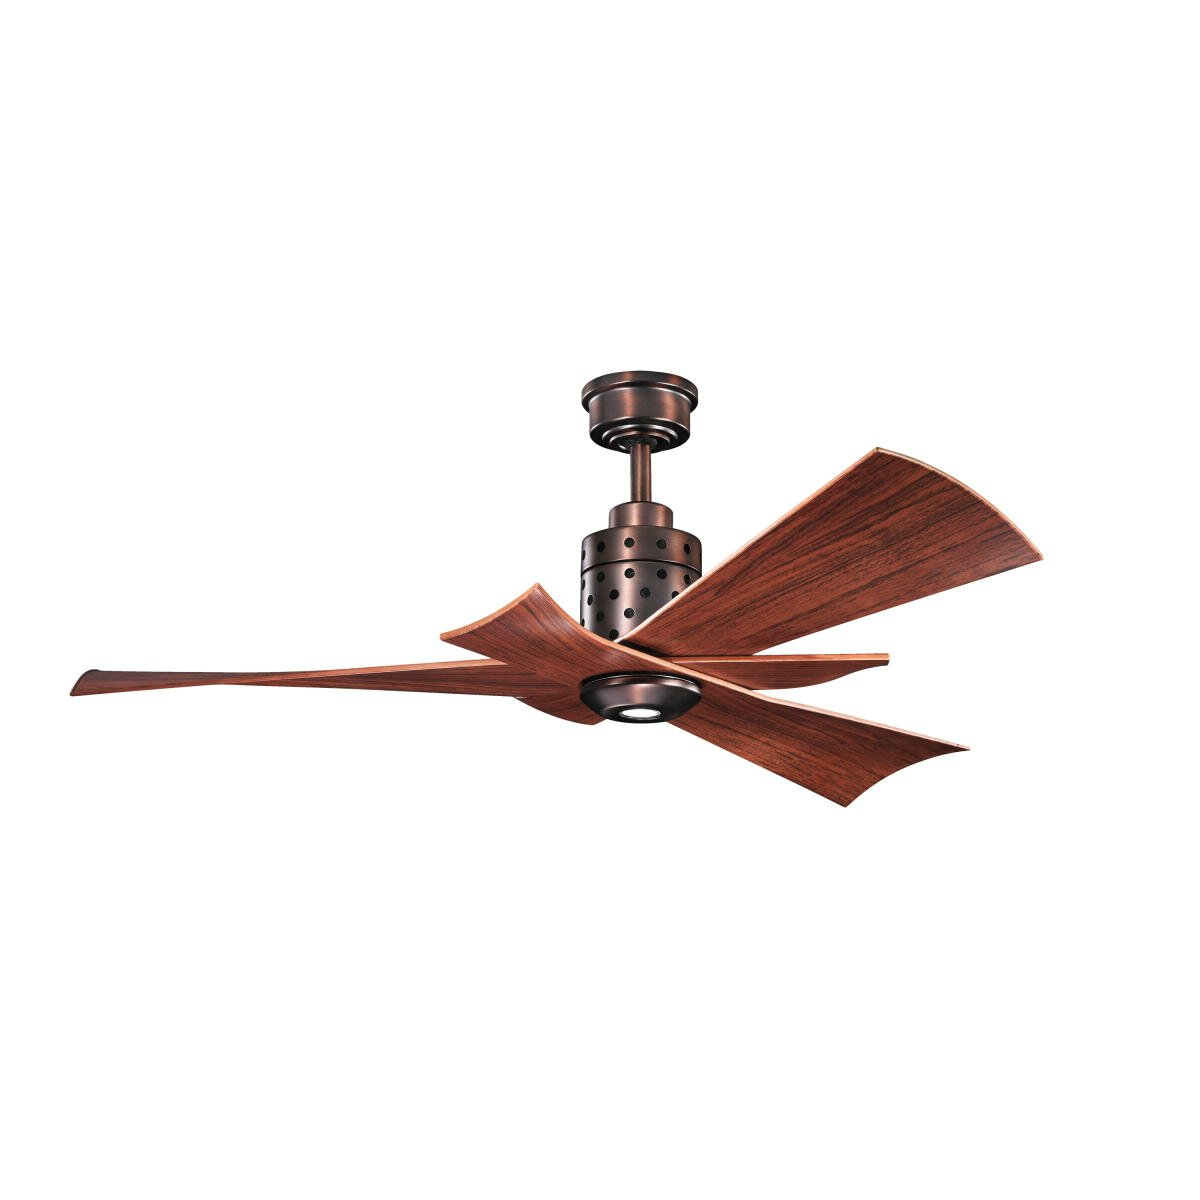 kichler ceiling fans kichler 56 quot frey 5 blade ceiling fan amp reviews wayfair ca 10163